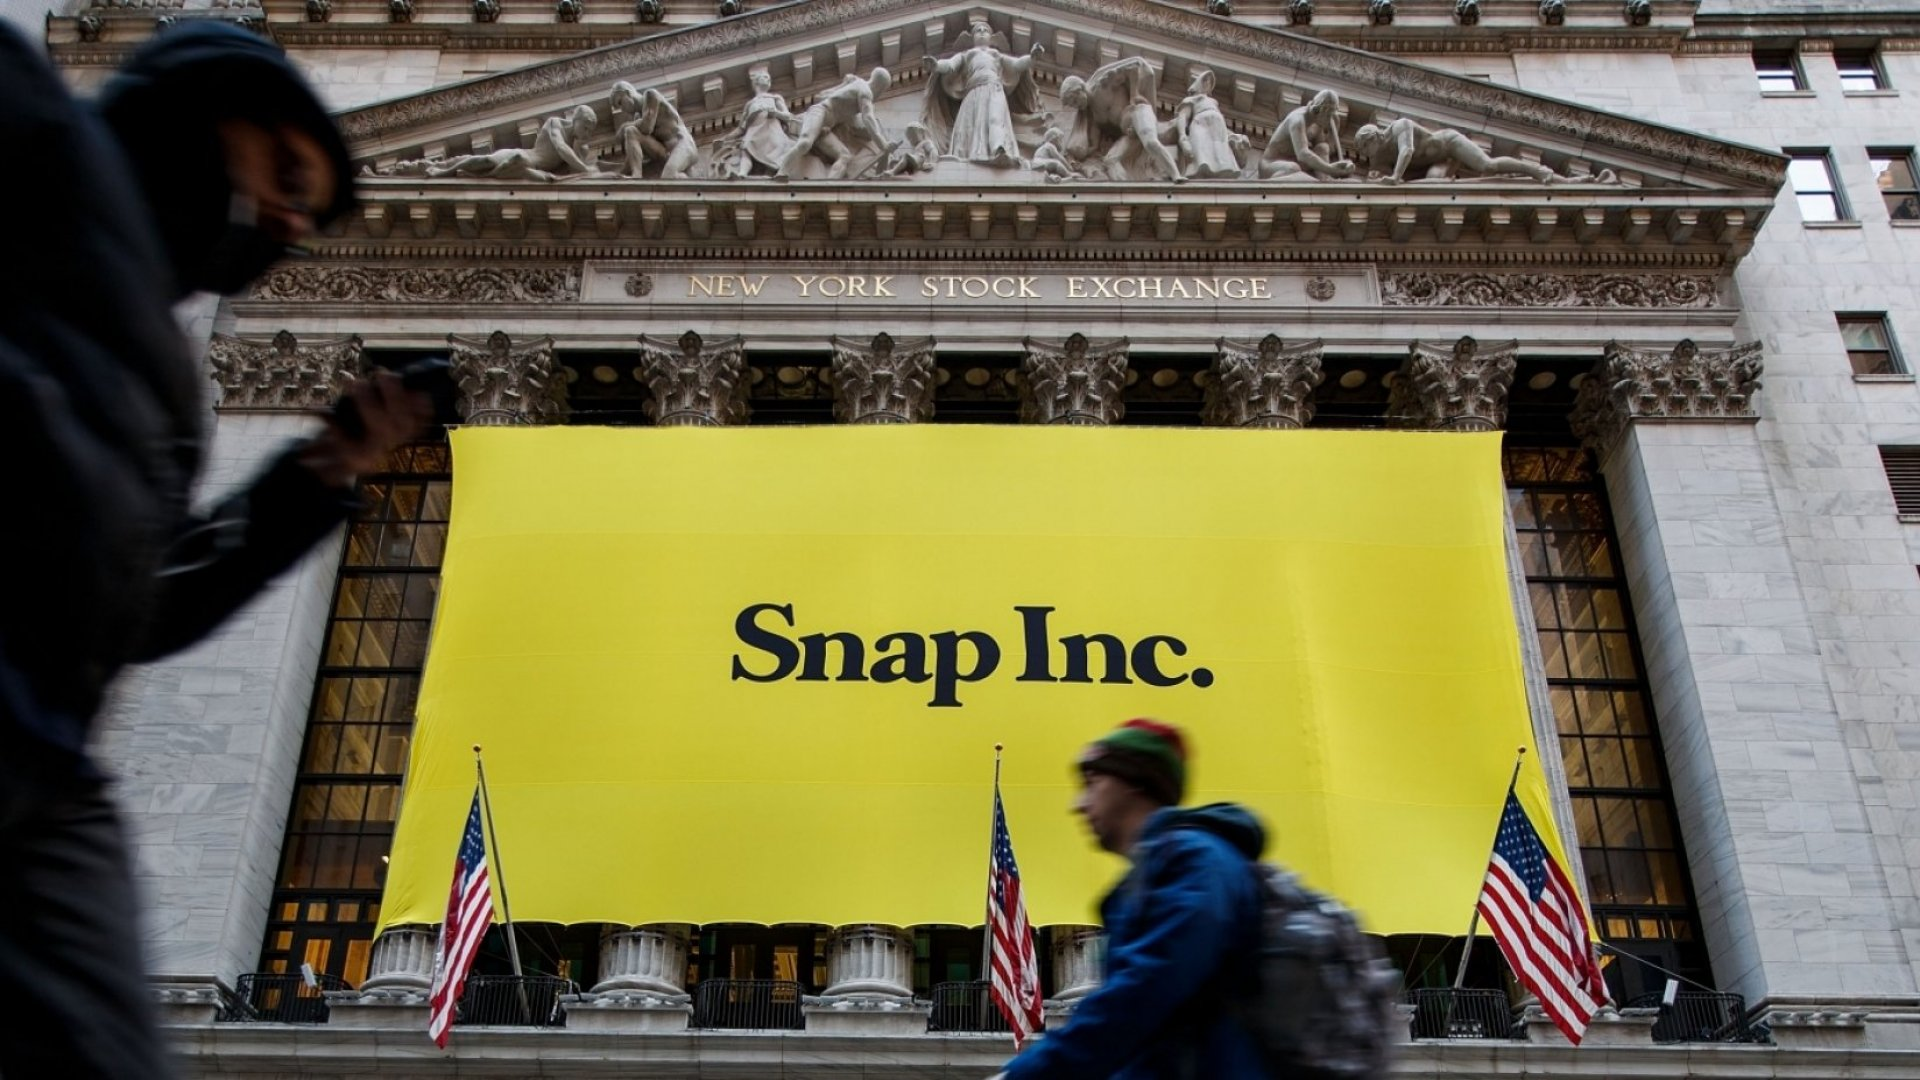 Snapchat Rolls Out First Major Product Since Its IPO in March